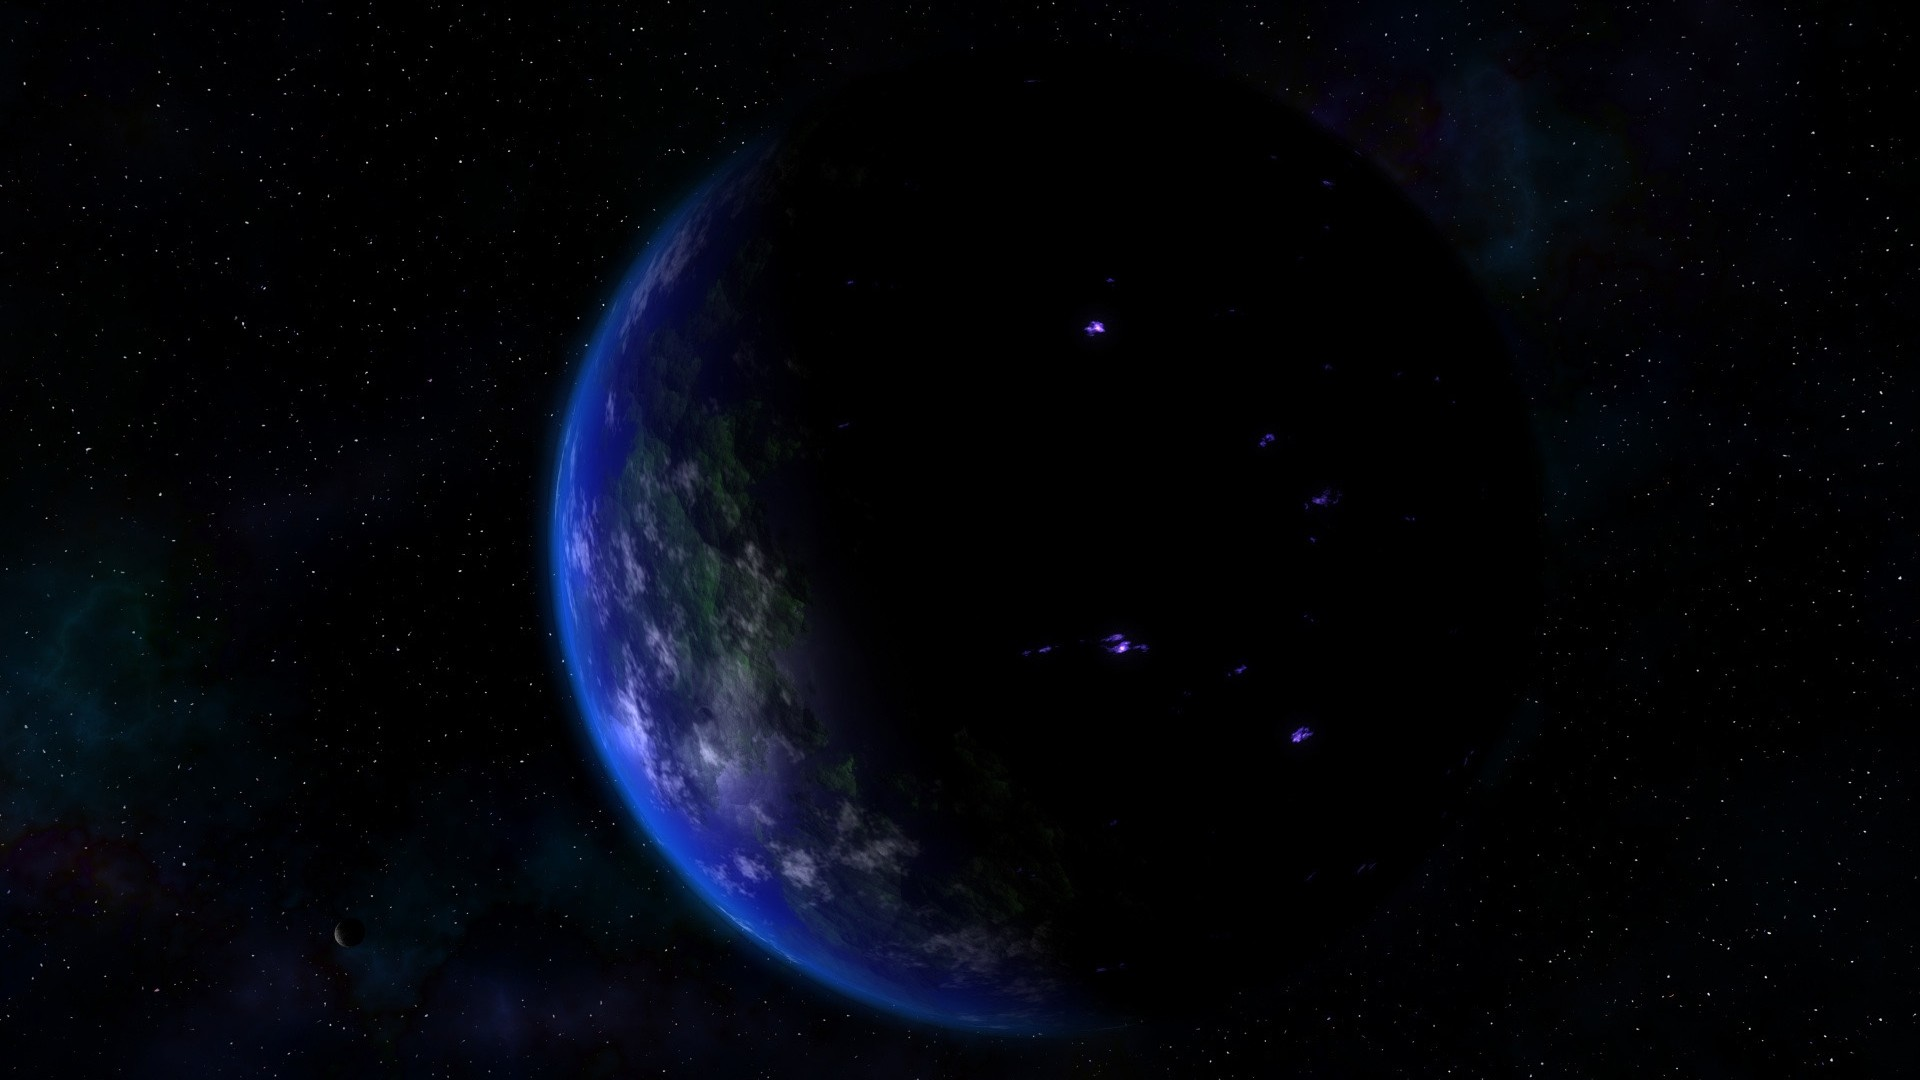 Wallpaper earth, planet, days, day, night, stars